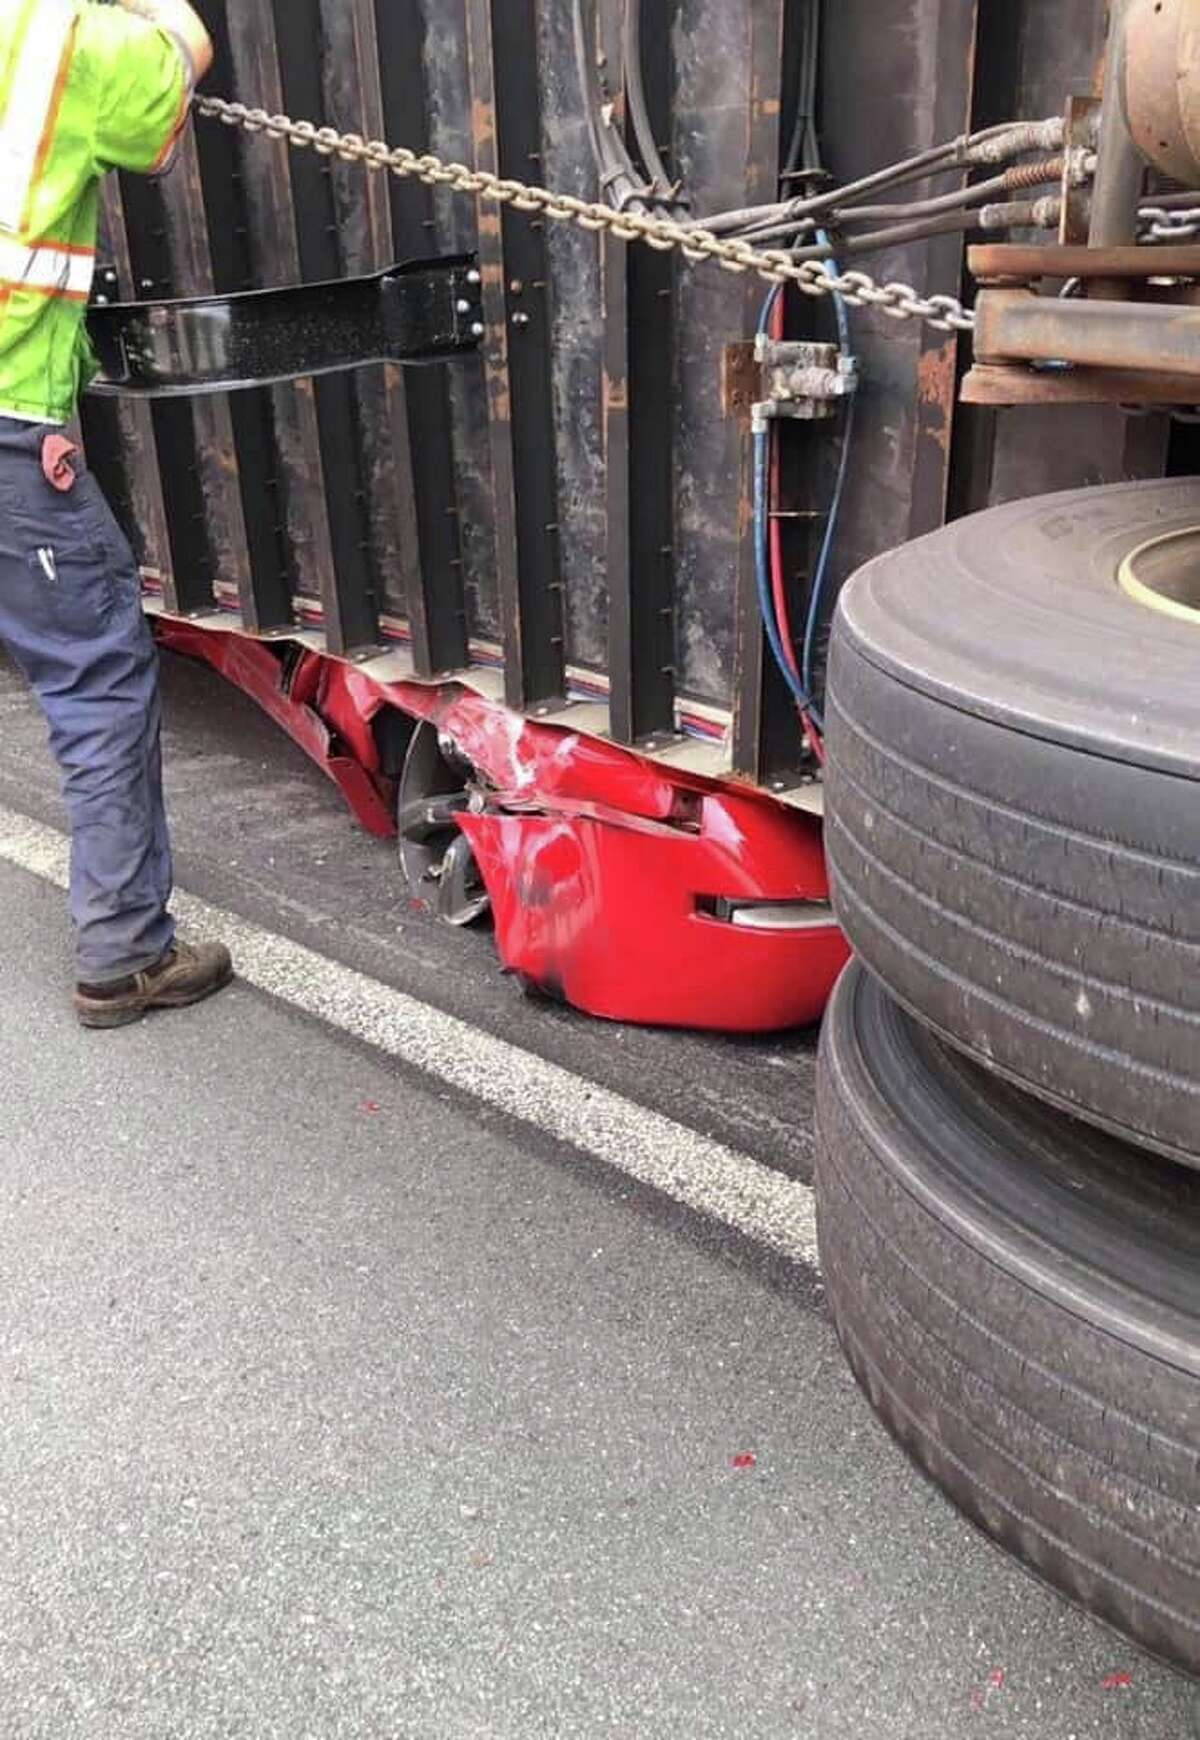 A Sept. 25, 2019, crash on Interstate 787 in Watervliet, N.Y., crushed a car under a tractor trailer and forced police to close all northbound lanes of the highway.